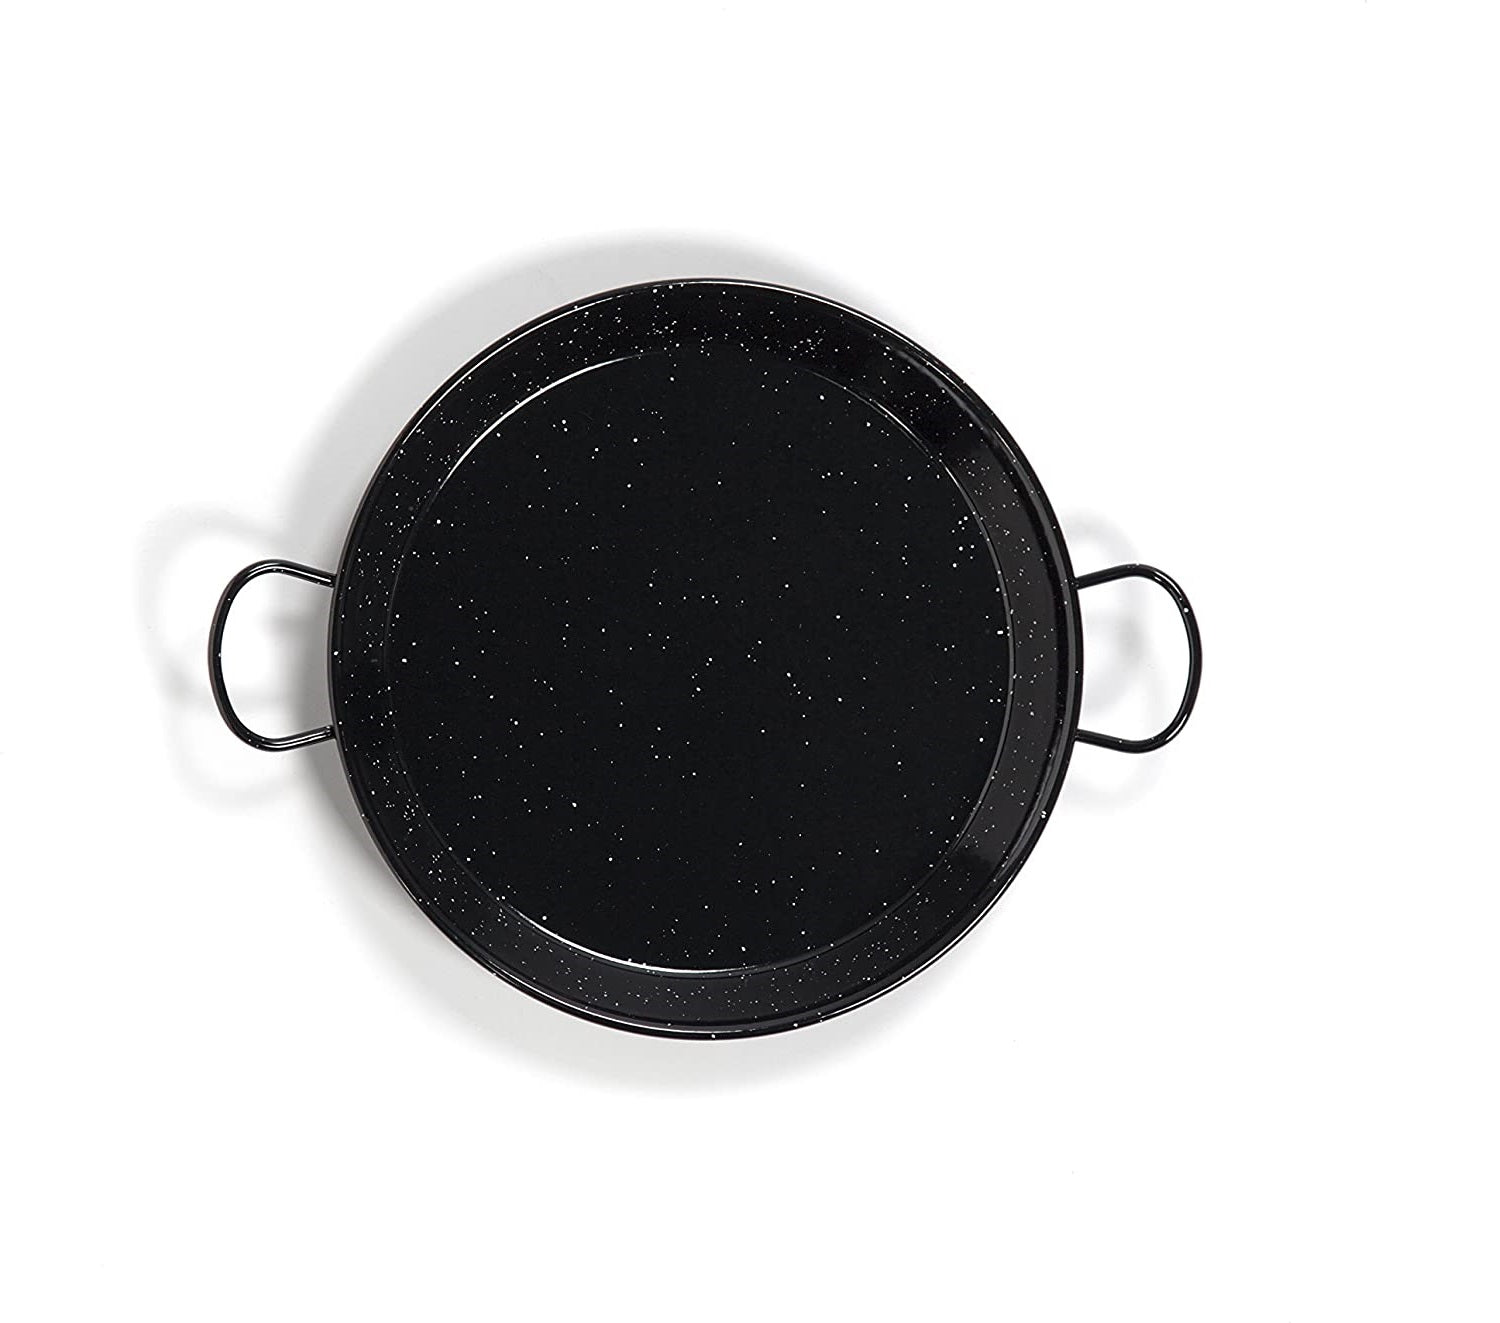 Mini Paella Pan for Tapas - 8 inch (20 cm)